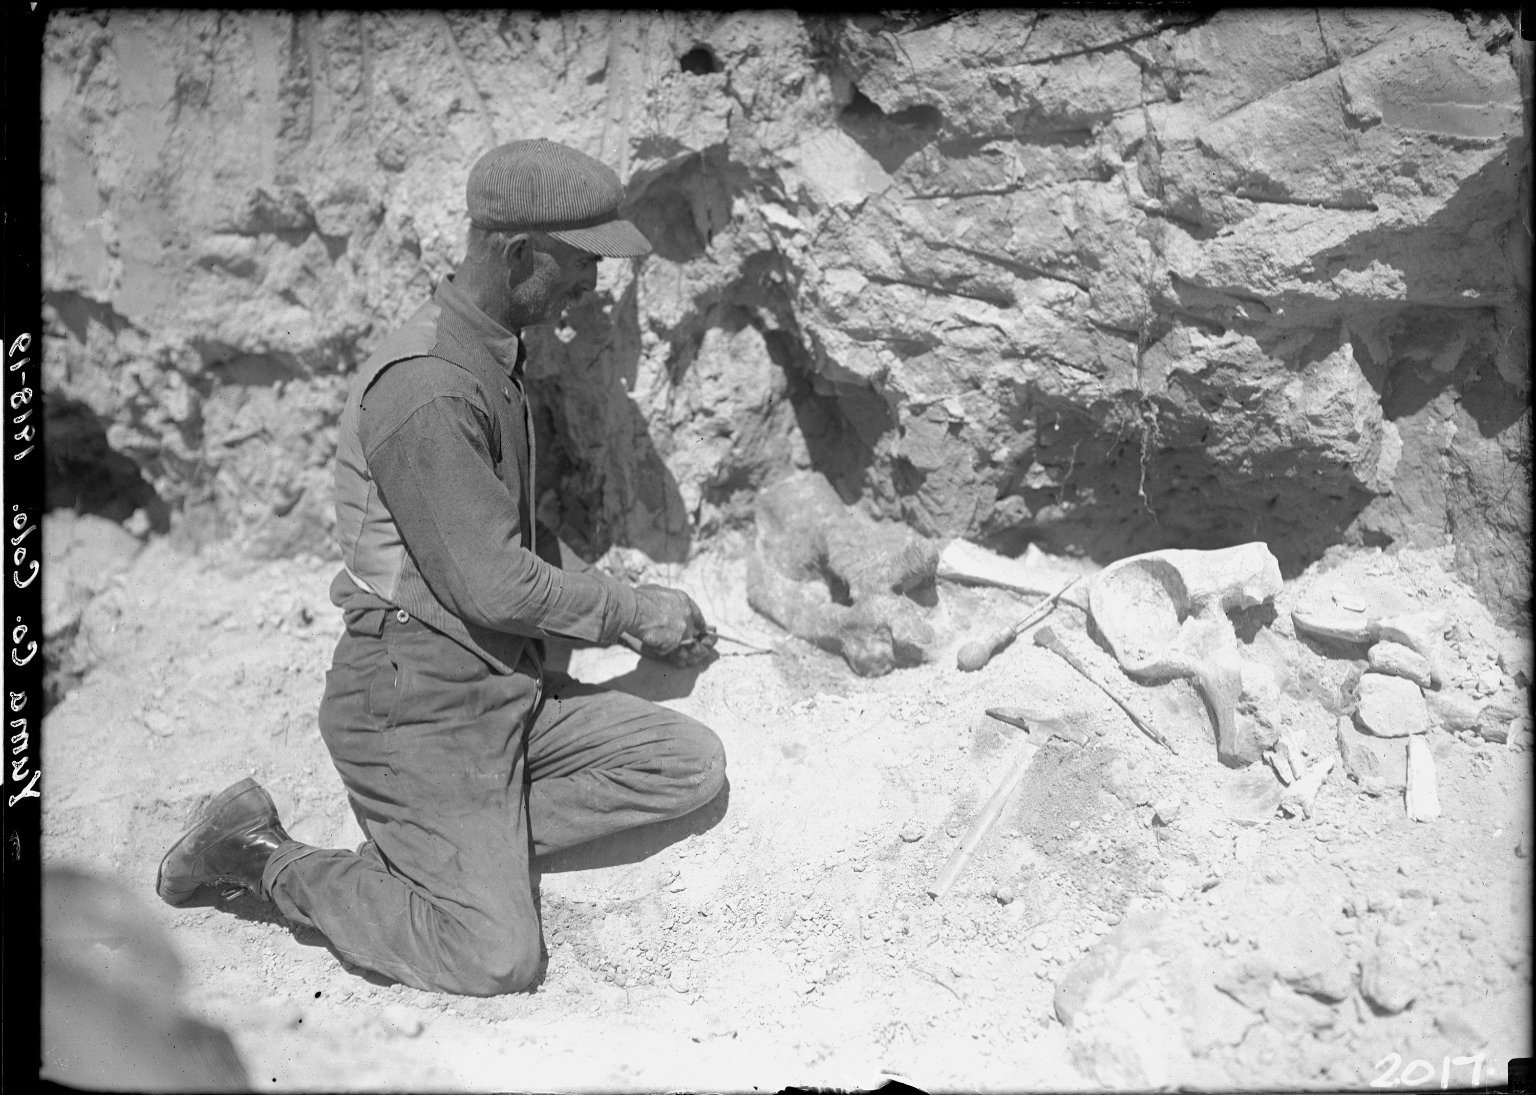 Worker digging fossils at Yuma County expedition site